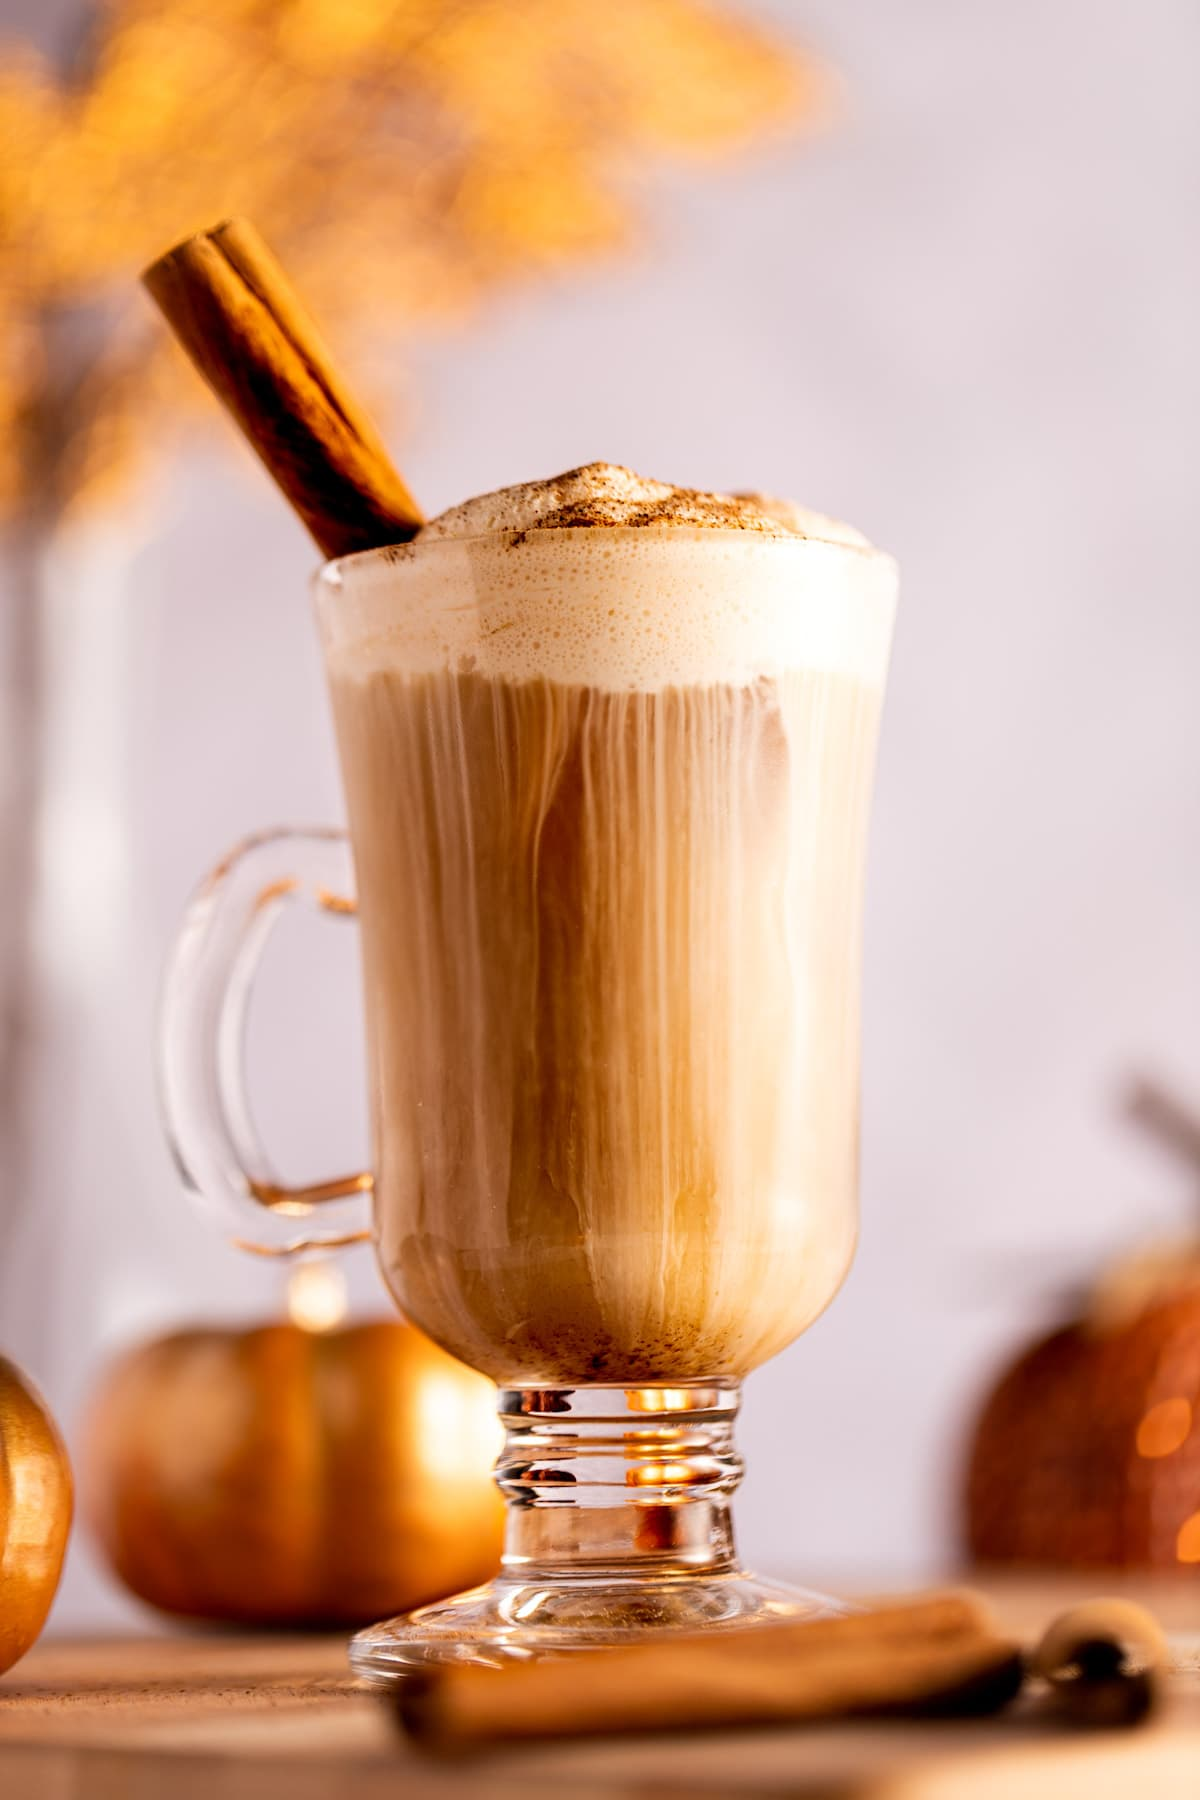 Up close view of an iced chai tea latte topped with pumpkin cold foam, a cinnamon stick sticking out of the glass and cold foam cream dripping down into the latte, decorative pumpkins in the background.